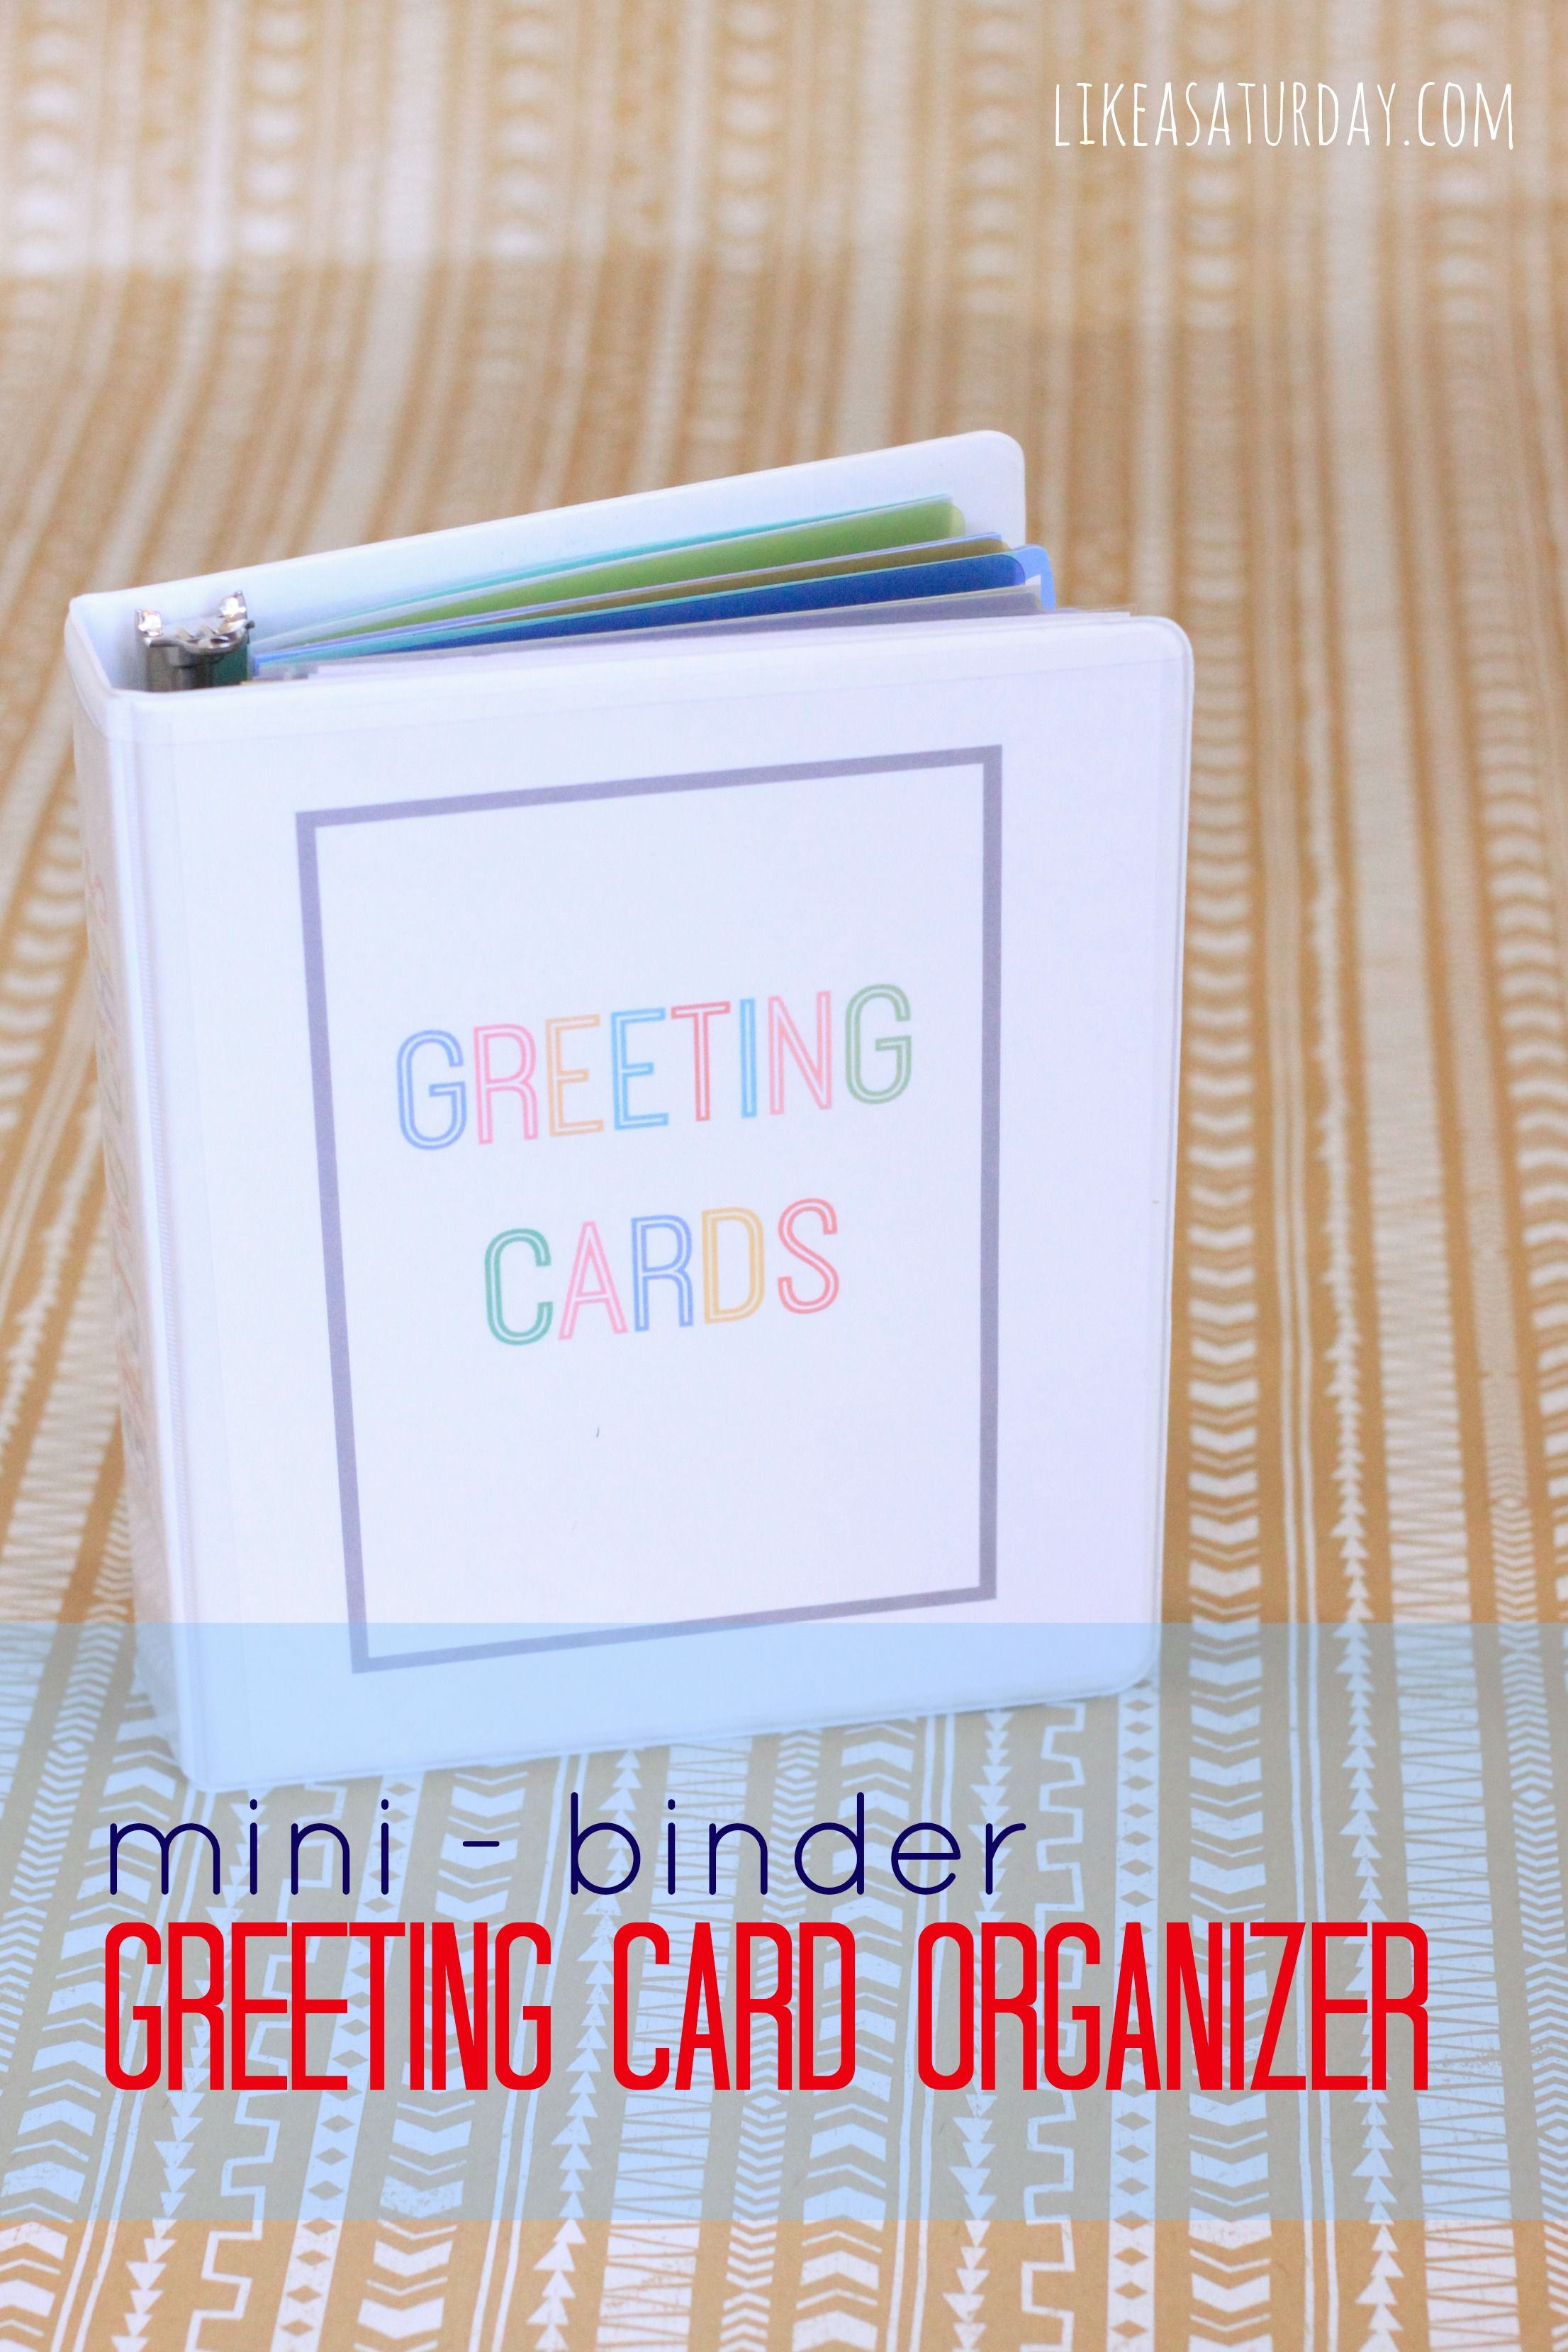 Greeting card organizer using a mini binder fully stocked with greeting card organizer using a mini binder fully stocked with hallmark value cards they run at 47 and 97 cents a piece m4hsunfo